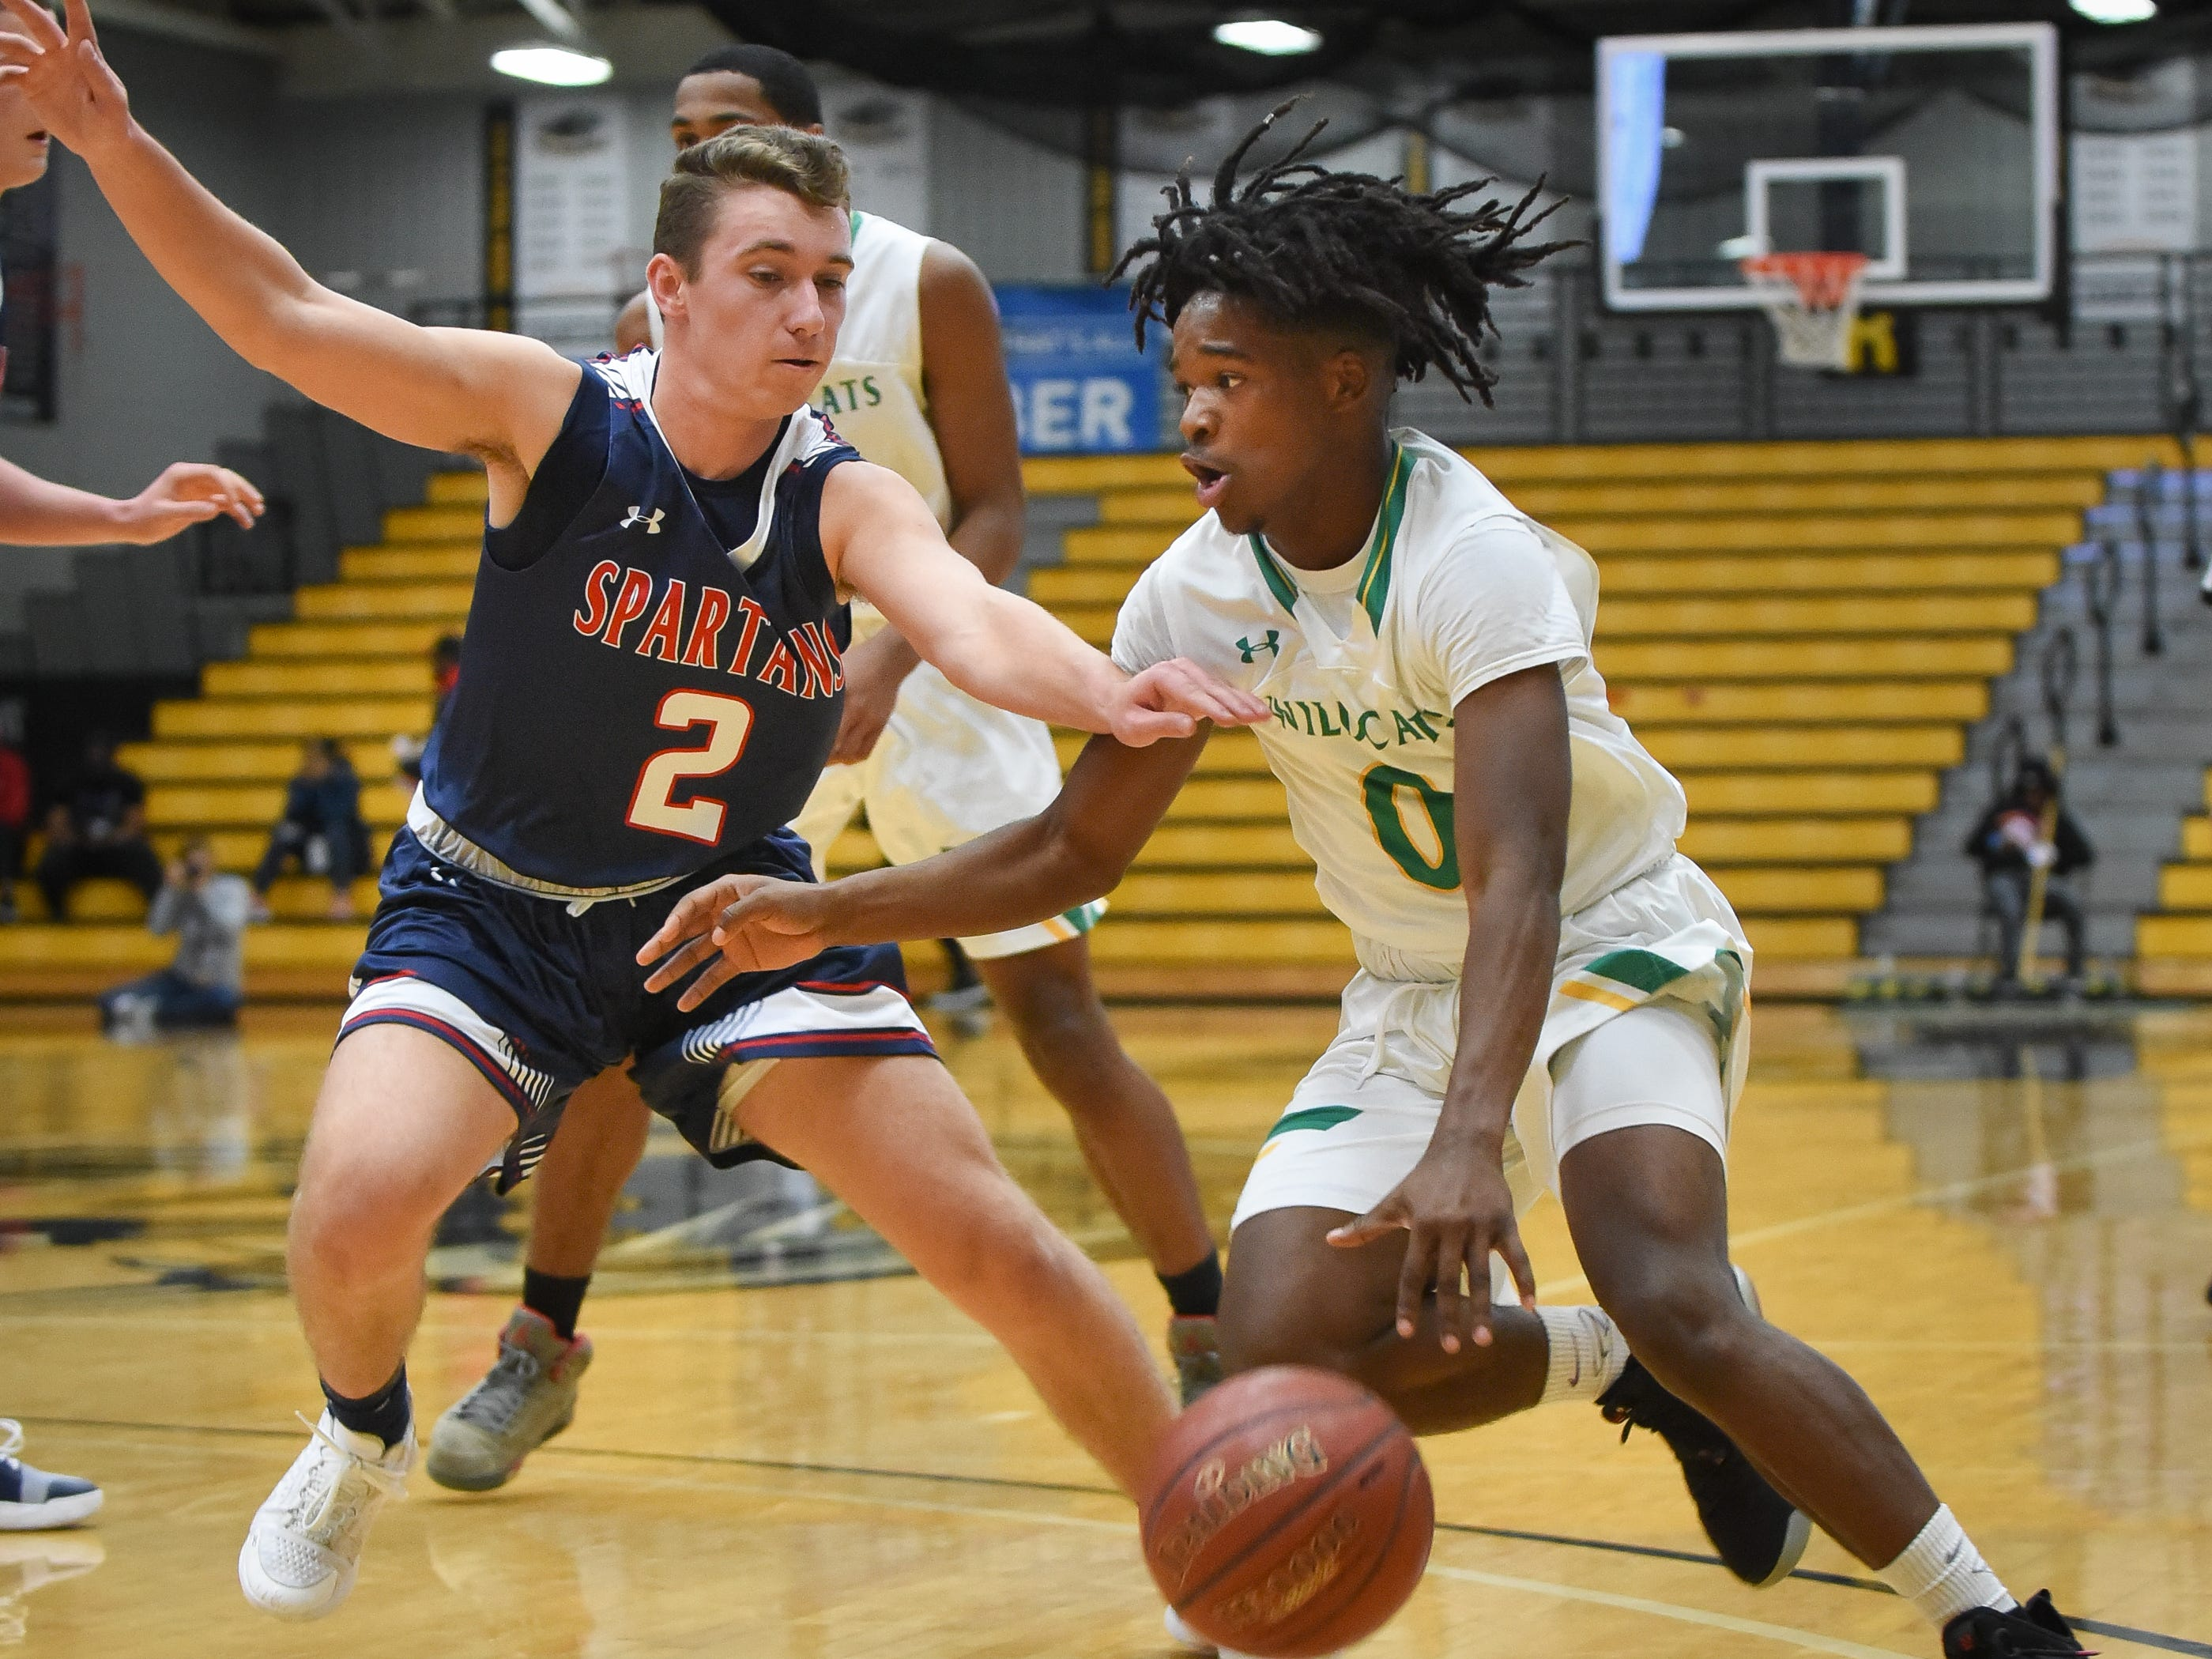 Milwaukee Hamilton junior guard Terrion Oliver drives against Brookfield East junior guard MIchael Poker in the Fresh Coast Classic high school basketball showcase Saturday, November 24, 2018, at UW-Milwaukee's Klotsche Center.